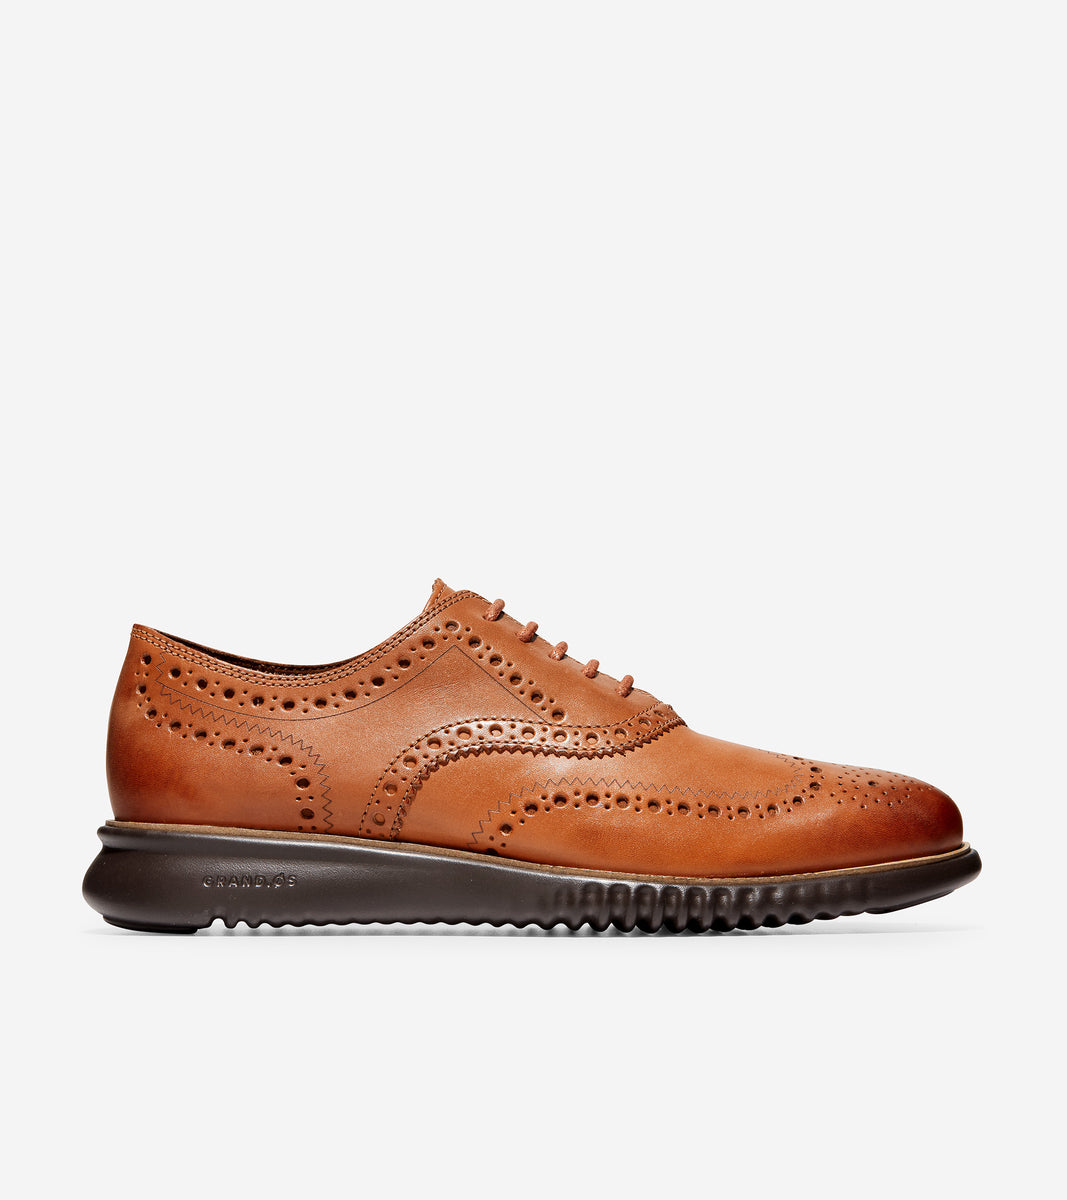 2.ZERØGRAND Wingtip Oxford